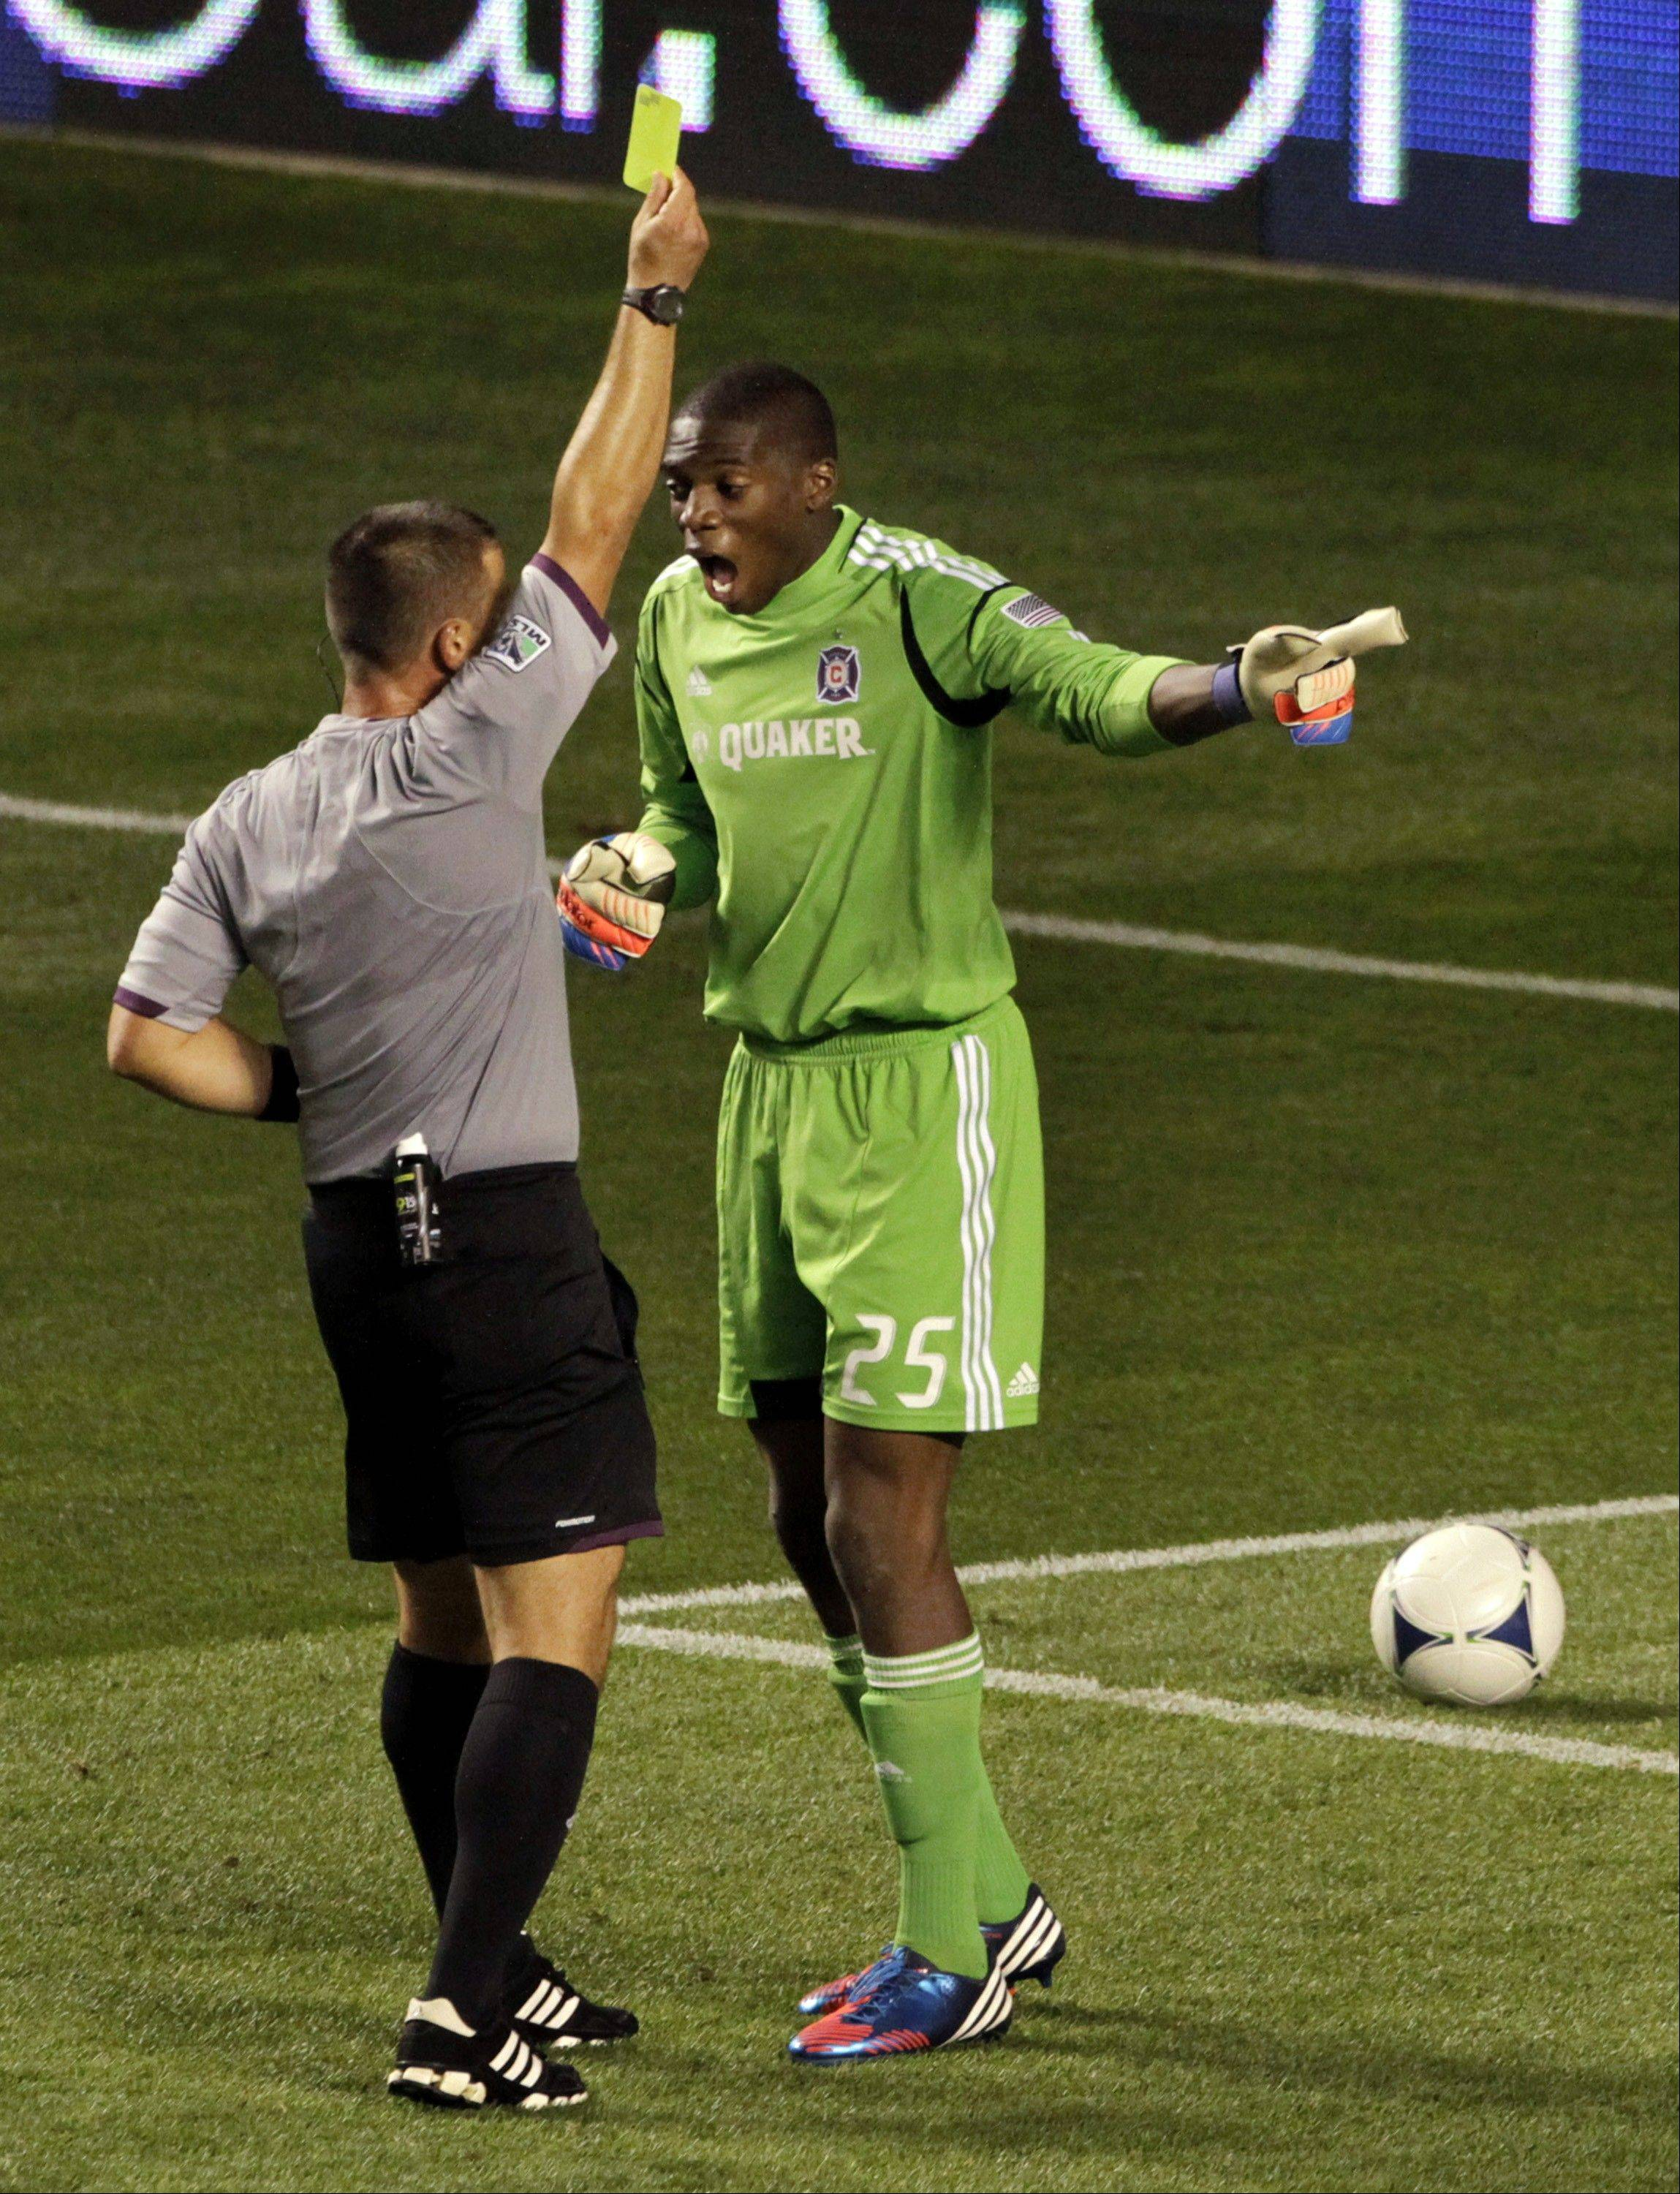 Chicago Fire goal keeper Sean Johnson, here arguing a yellow card call against the New England Revolution last month, has helped the Fire defense become one of the best units in Major League Soccer. While they've been winning close games, it has been more than two months since their last shutout.